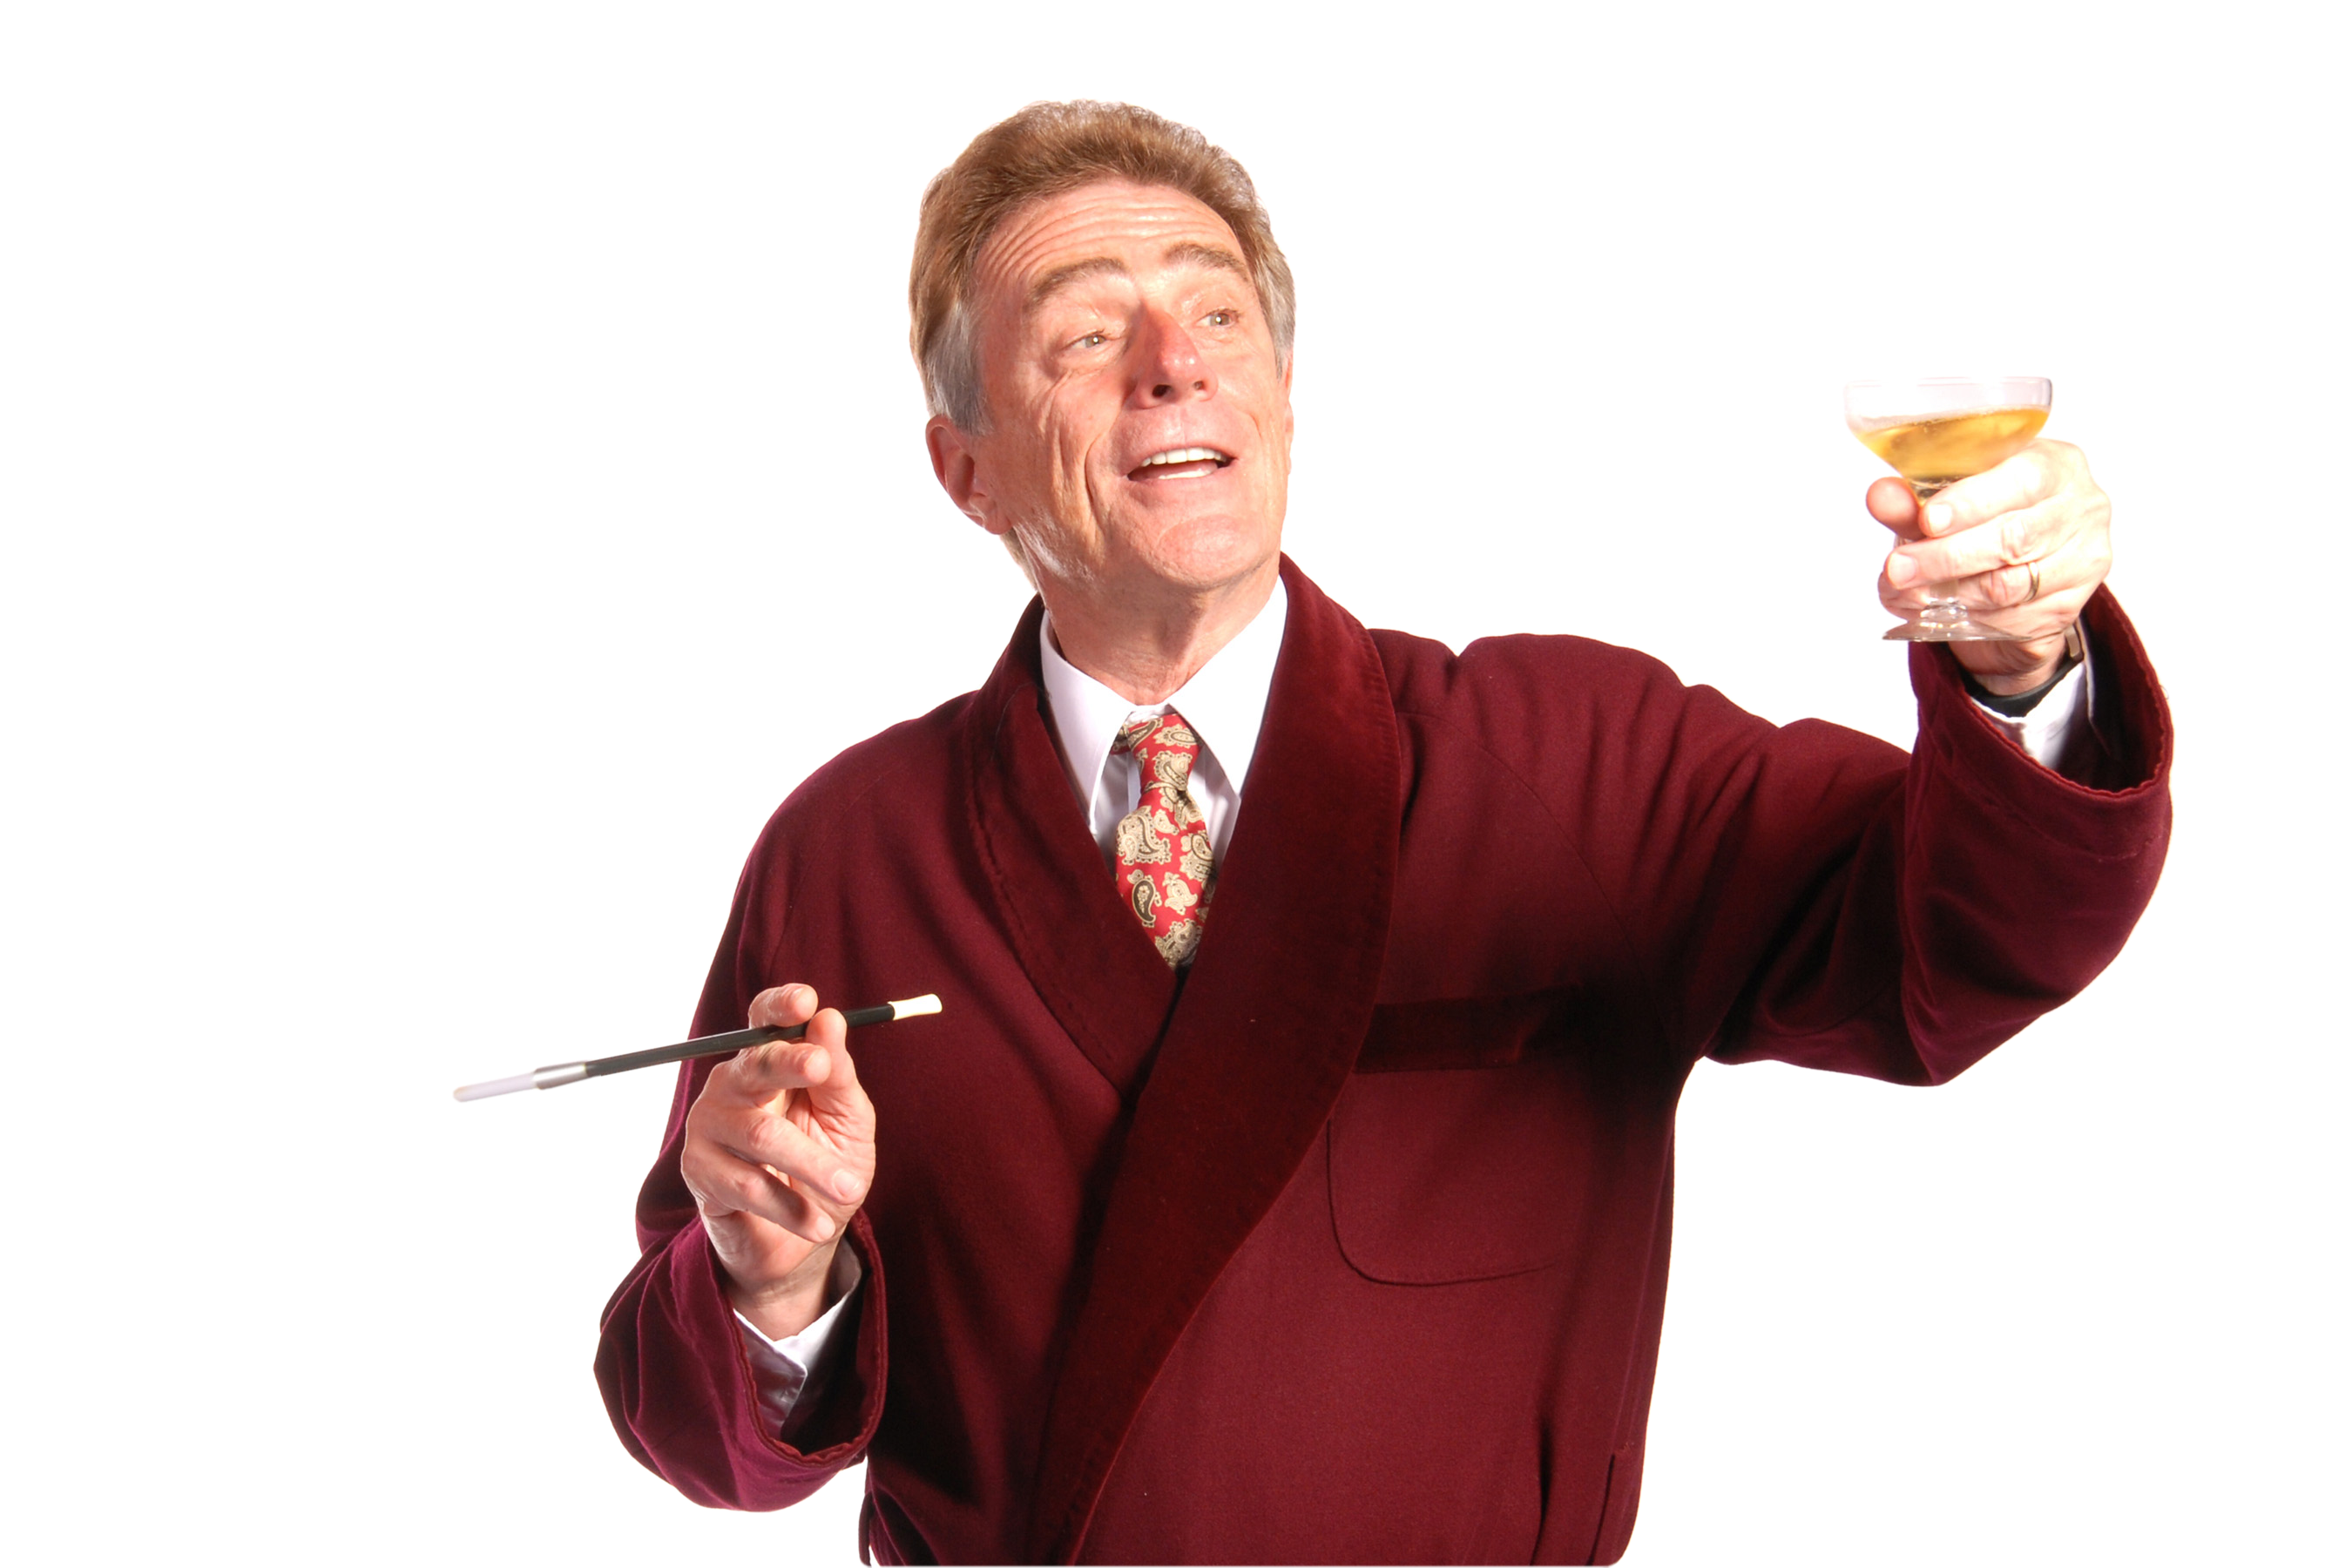 Gary Powell as Garry Essendine in Present Laughter, Lakewood Theatre Company Nove 6 - Dec 13, 2015